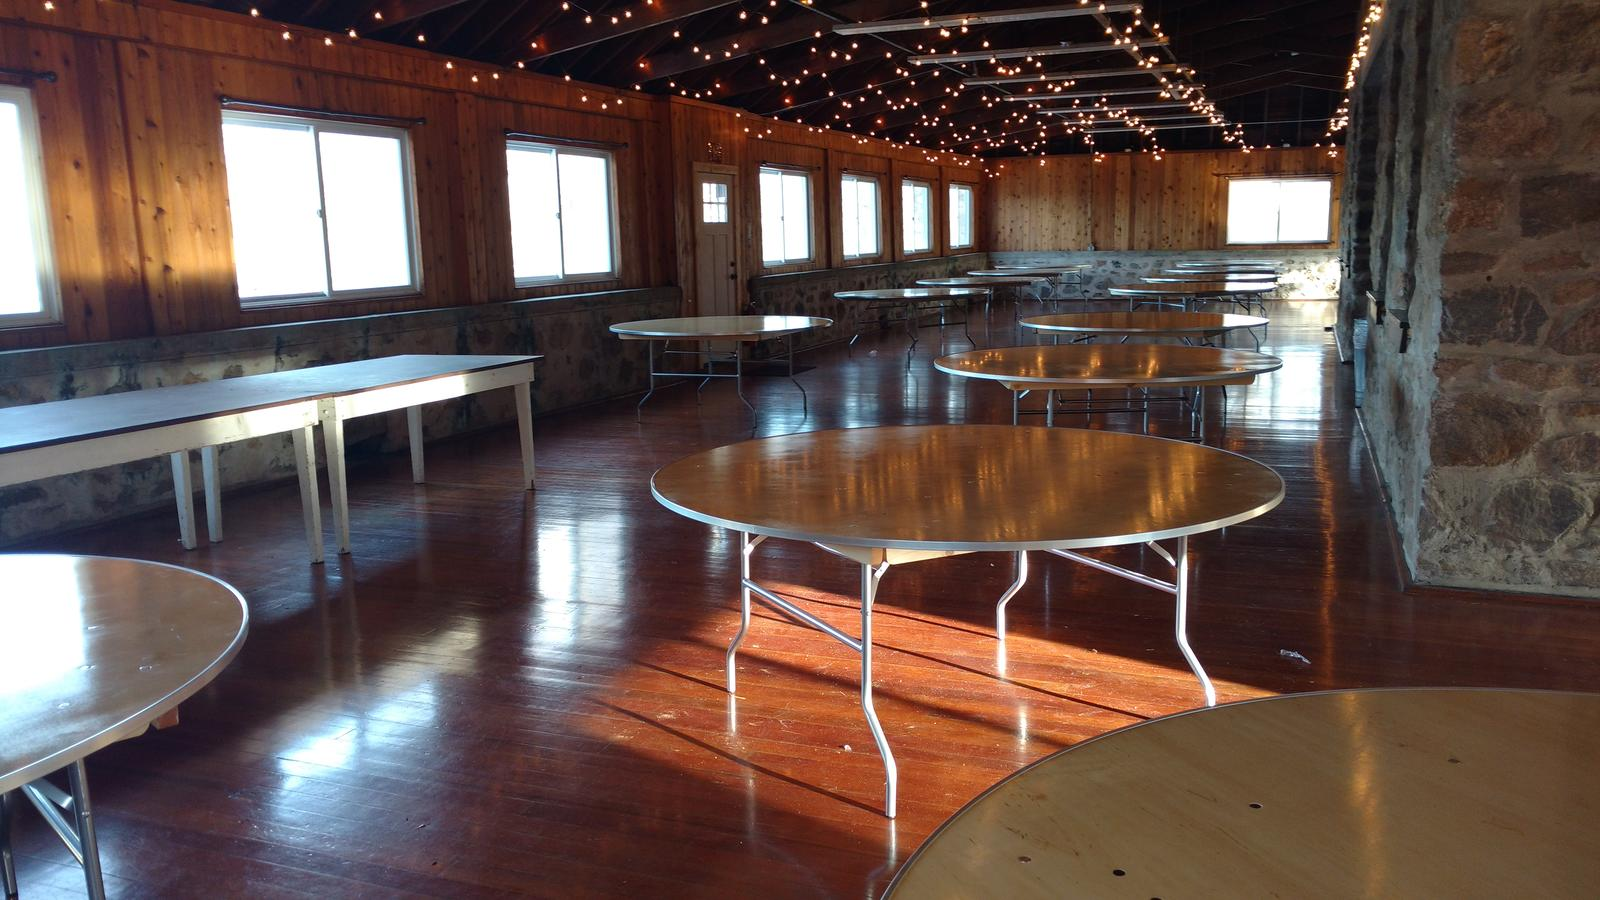 New banquet style tables in dining hall! Winter 2020